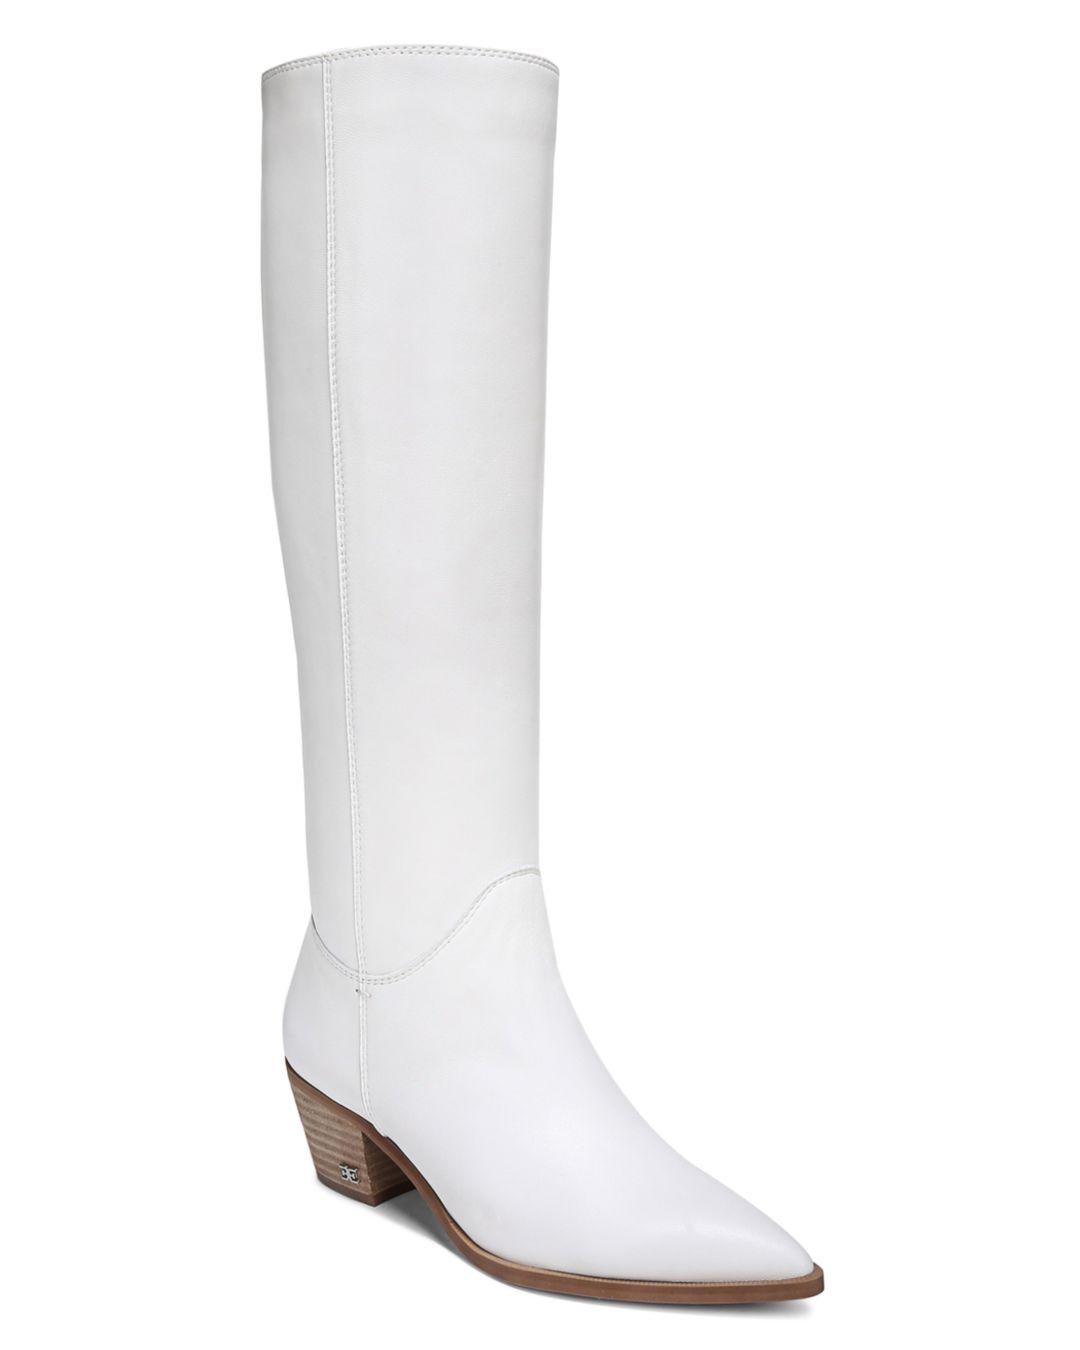 d248368247f1 Sam Edelman Women s Rowena Tall Slouchy Leather Boots in White - Lyst